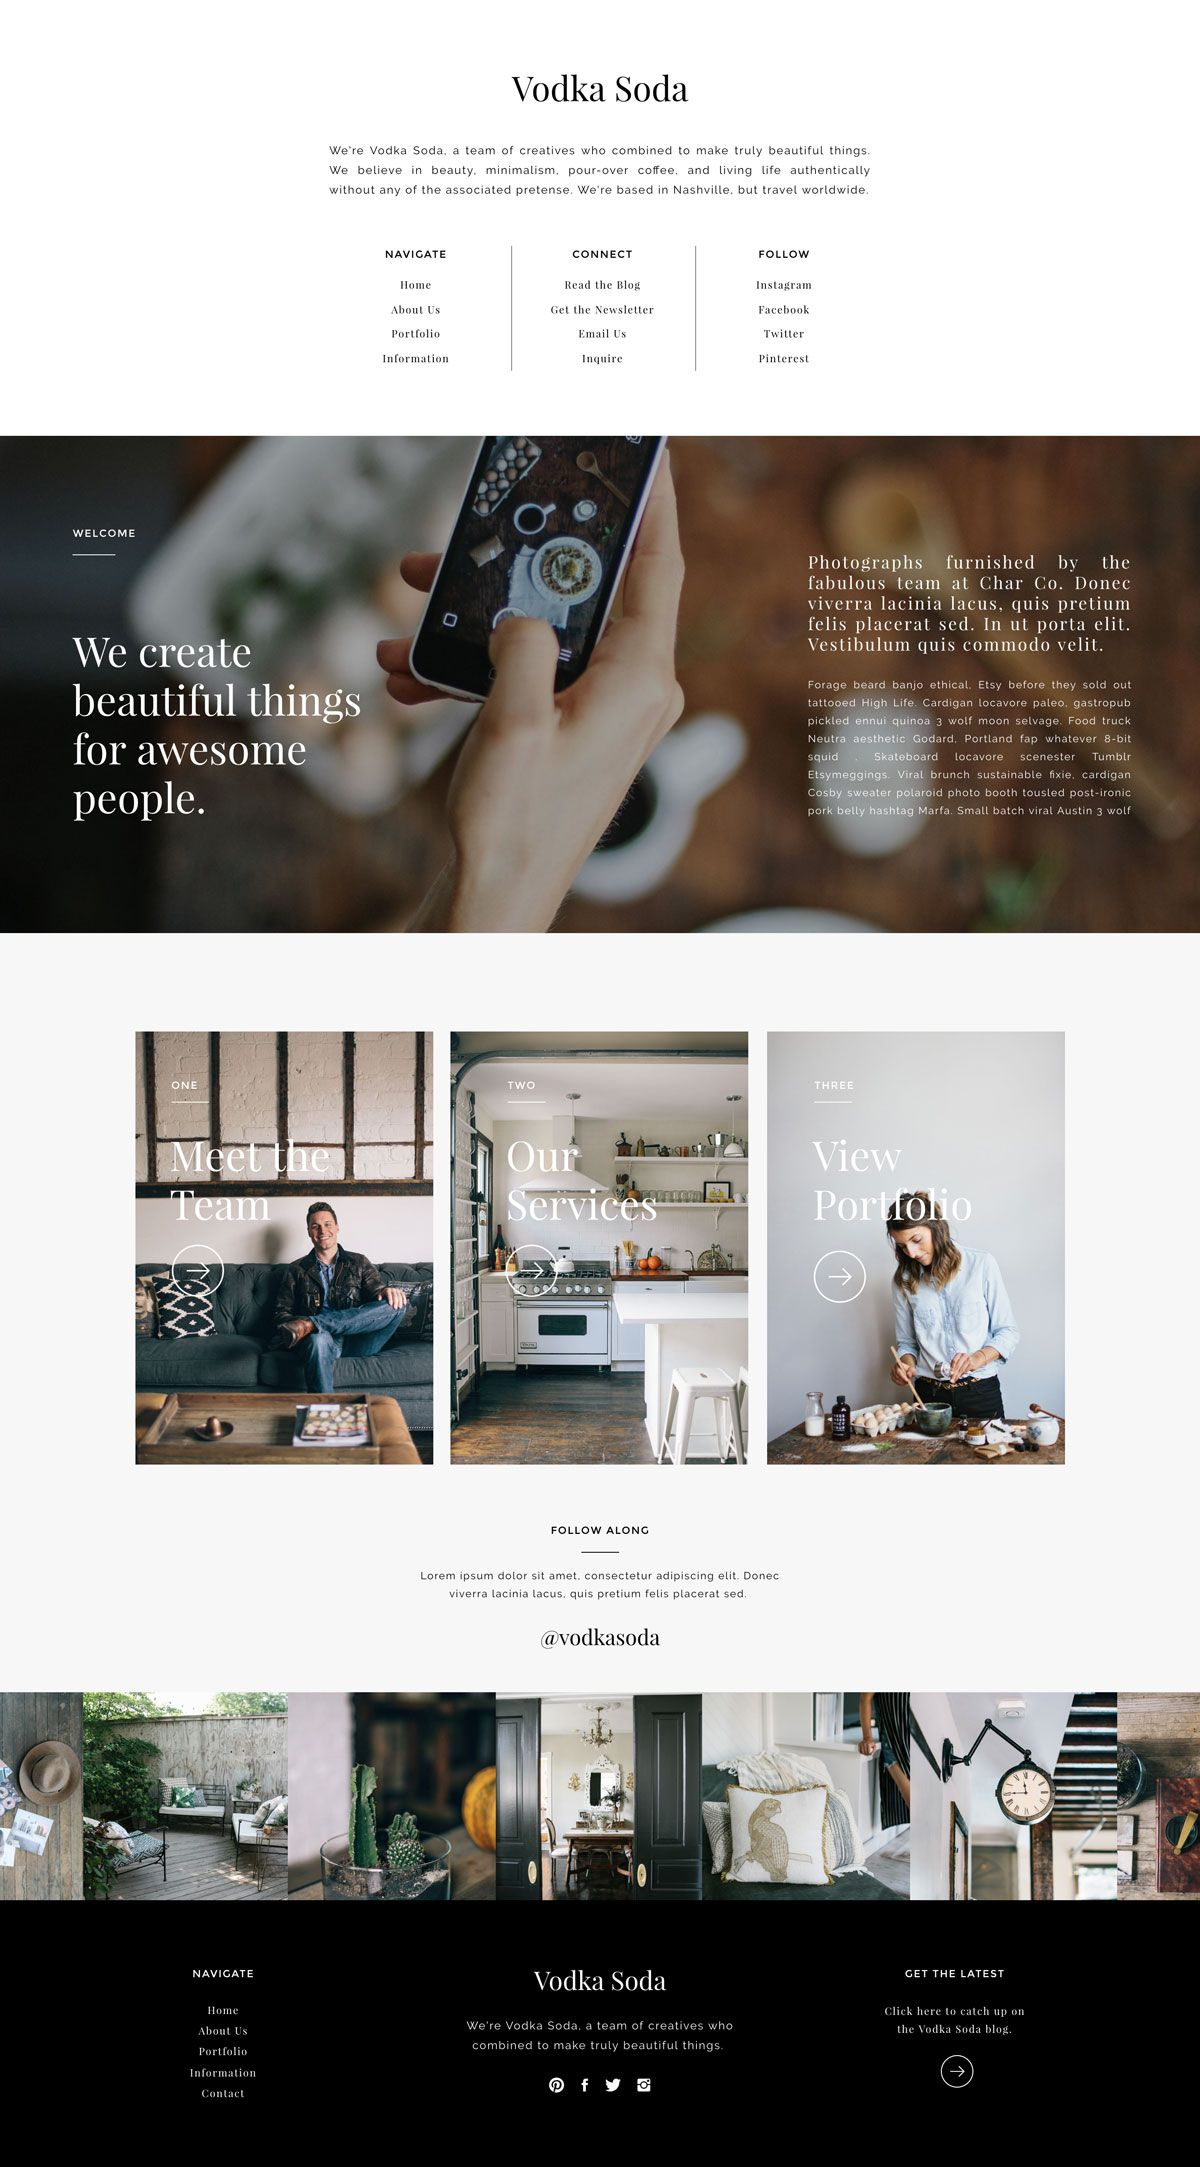 Vodka Soda Showit Premium Photography Website Template By Tonic